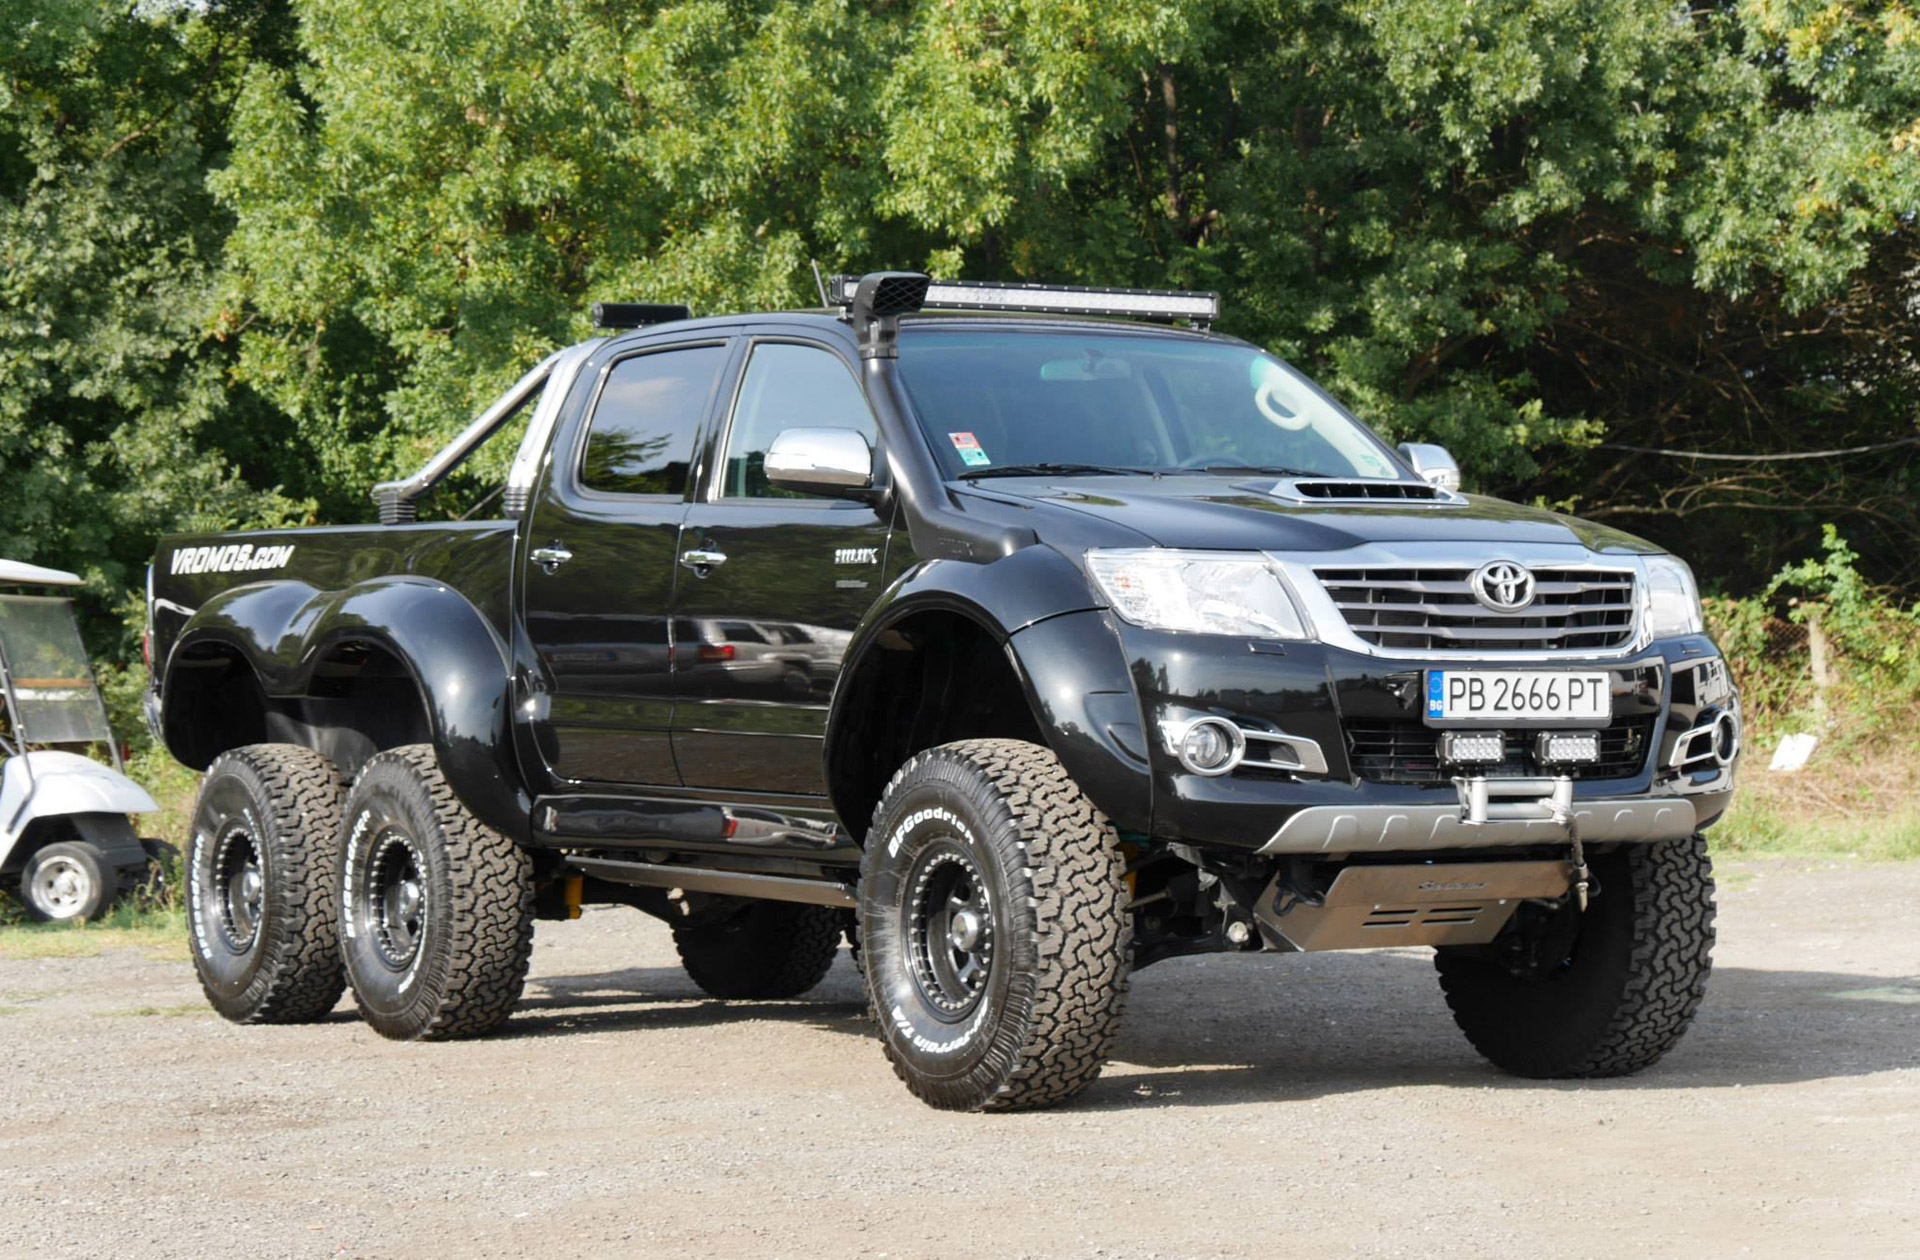 bulgarian tuner builds toyota hilux 6x6. Black Bedroom Furniture Sets. Home Design Ideas